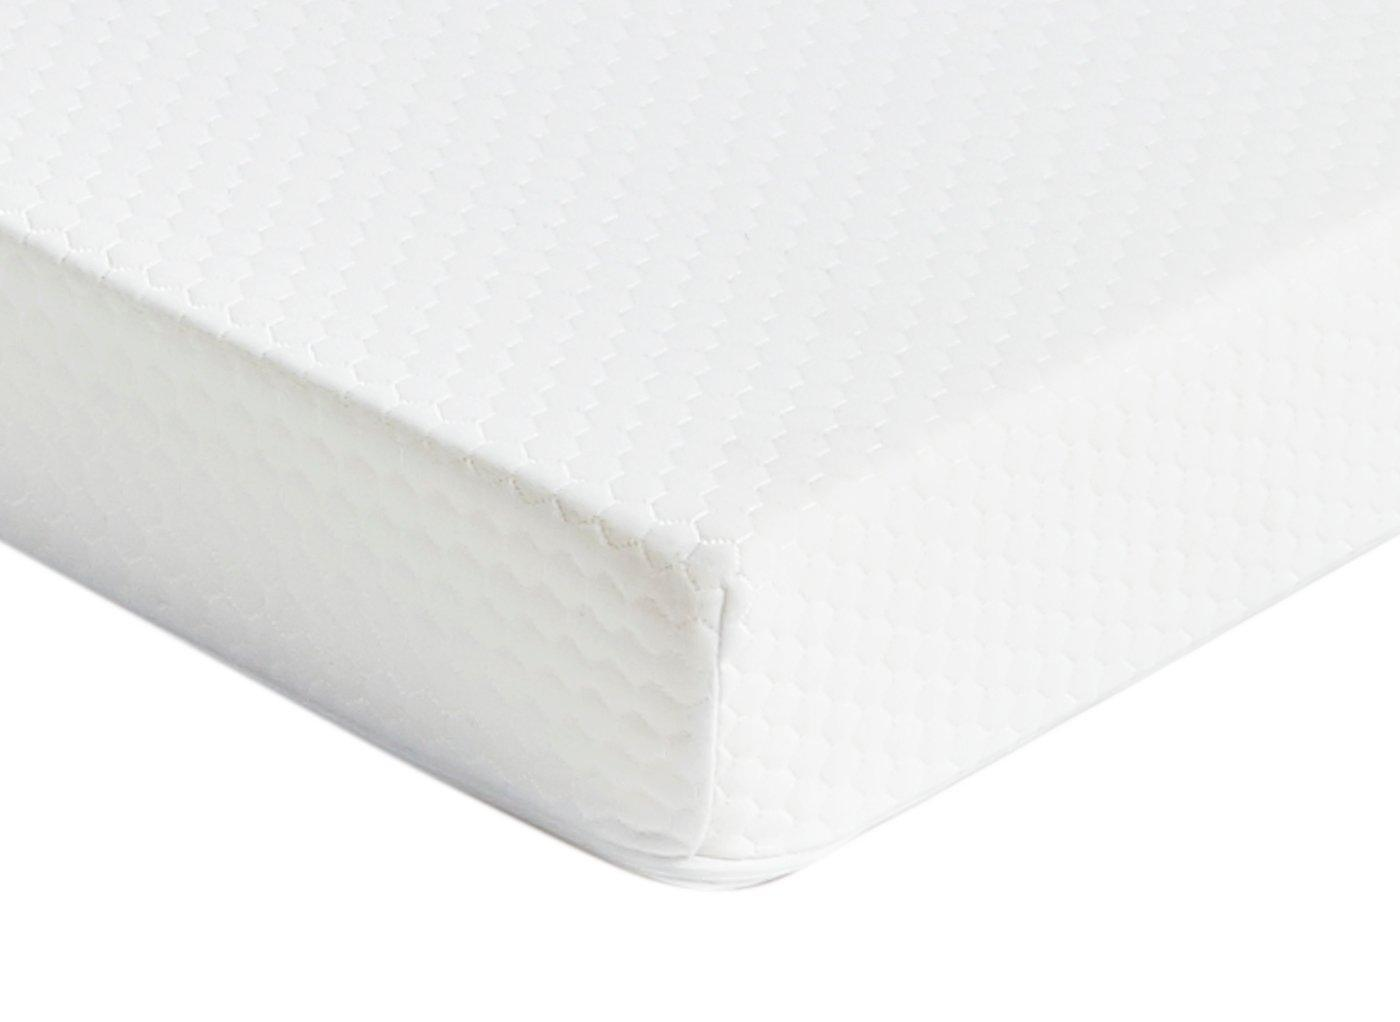 Doze Deluxe Mattress - Medium Firm